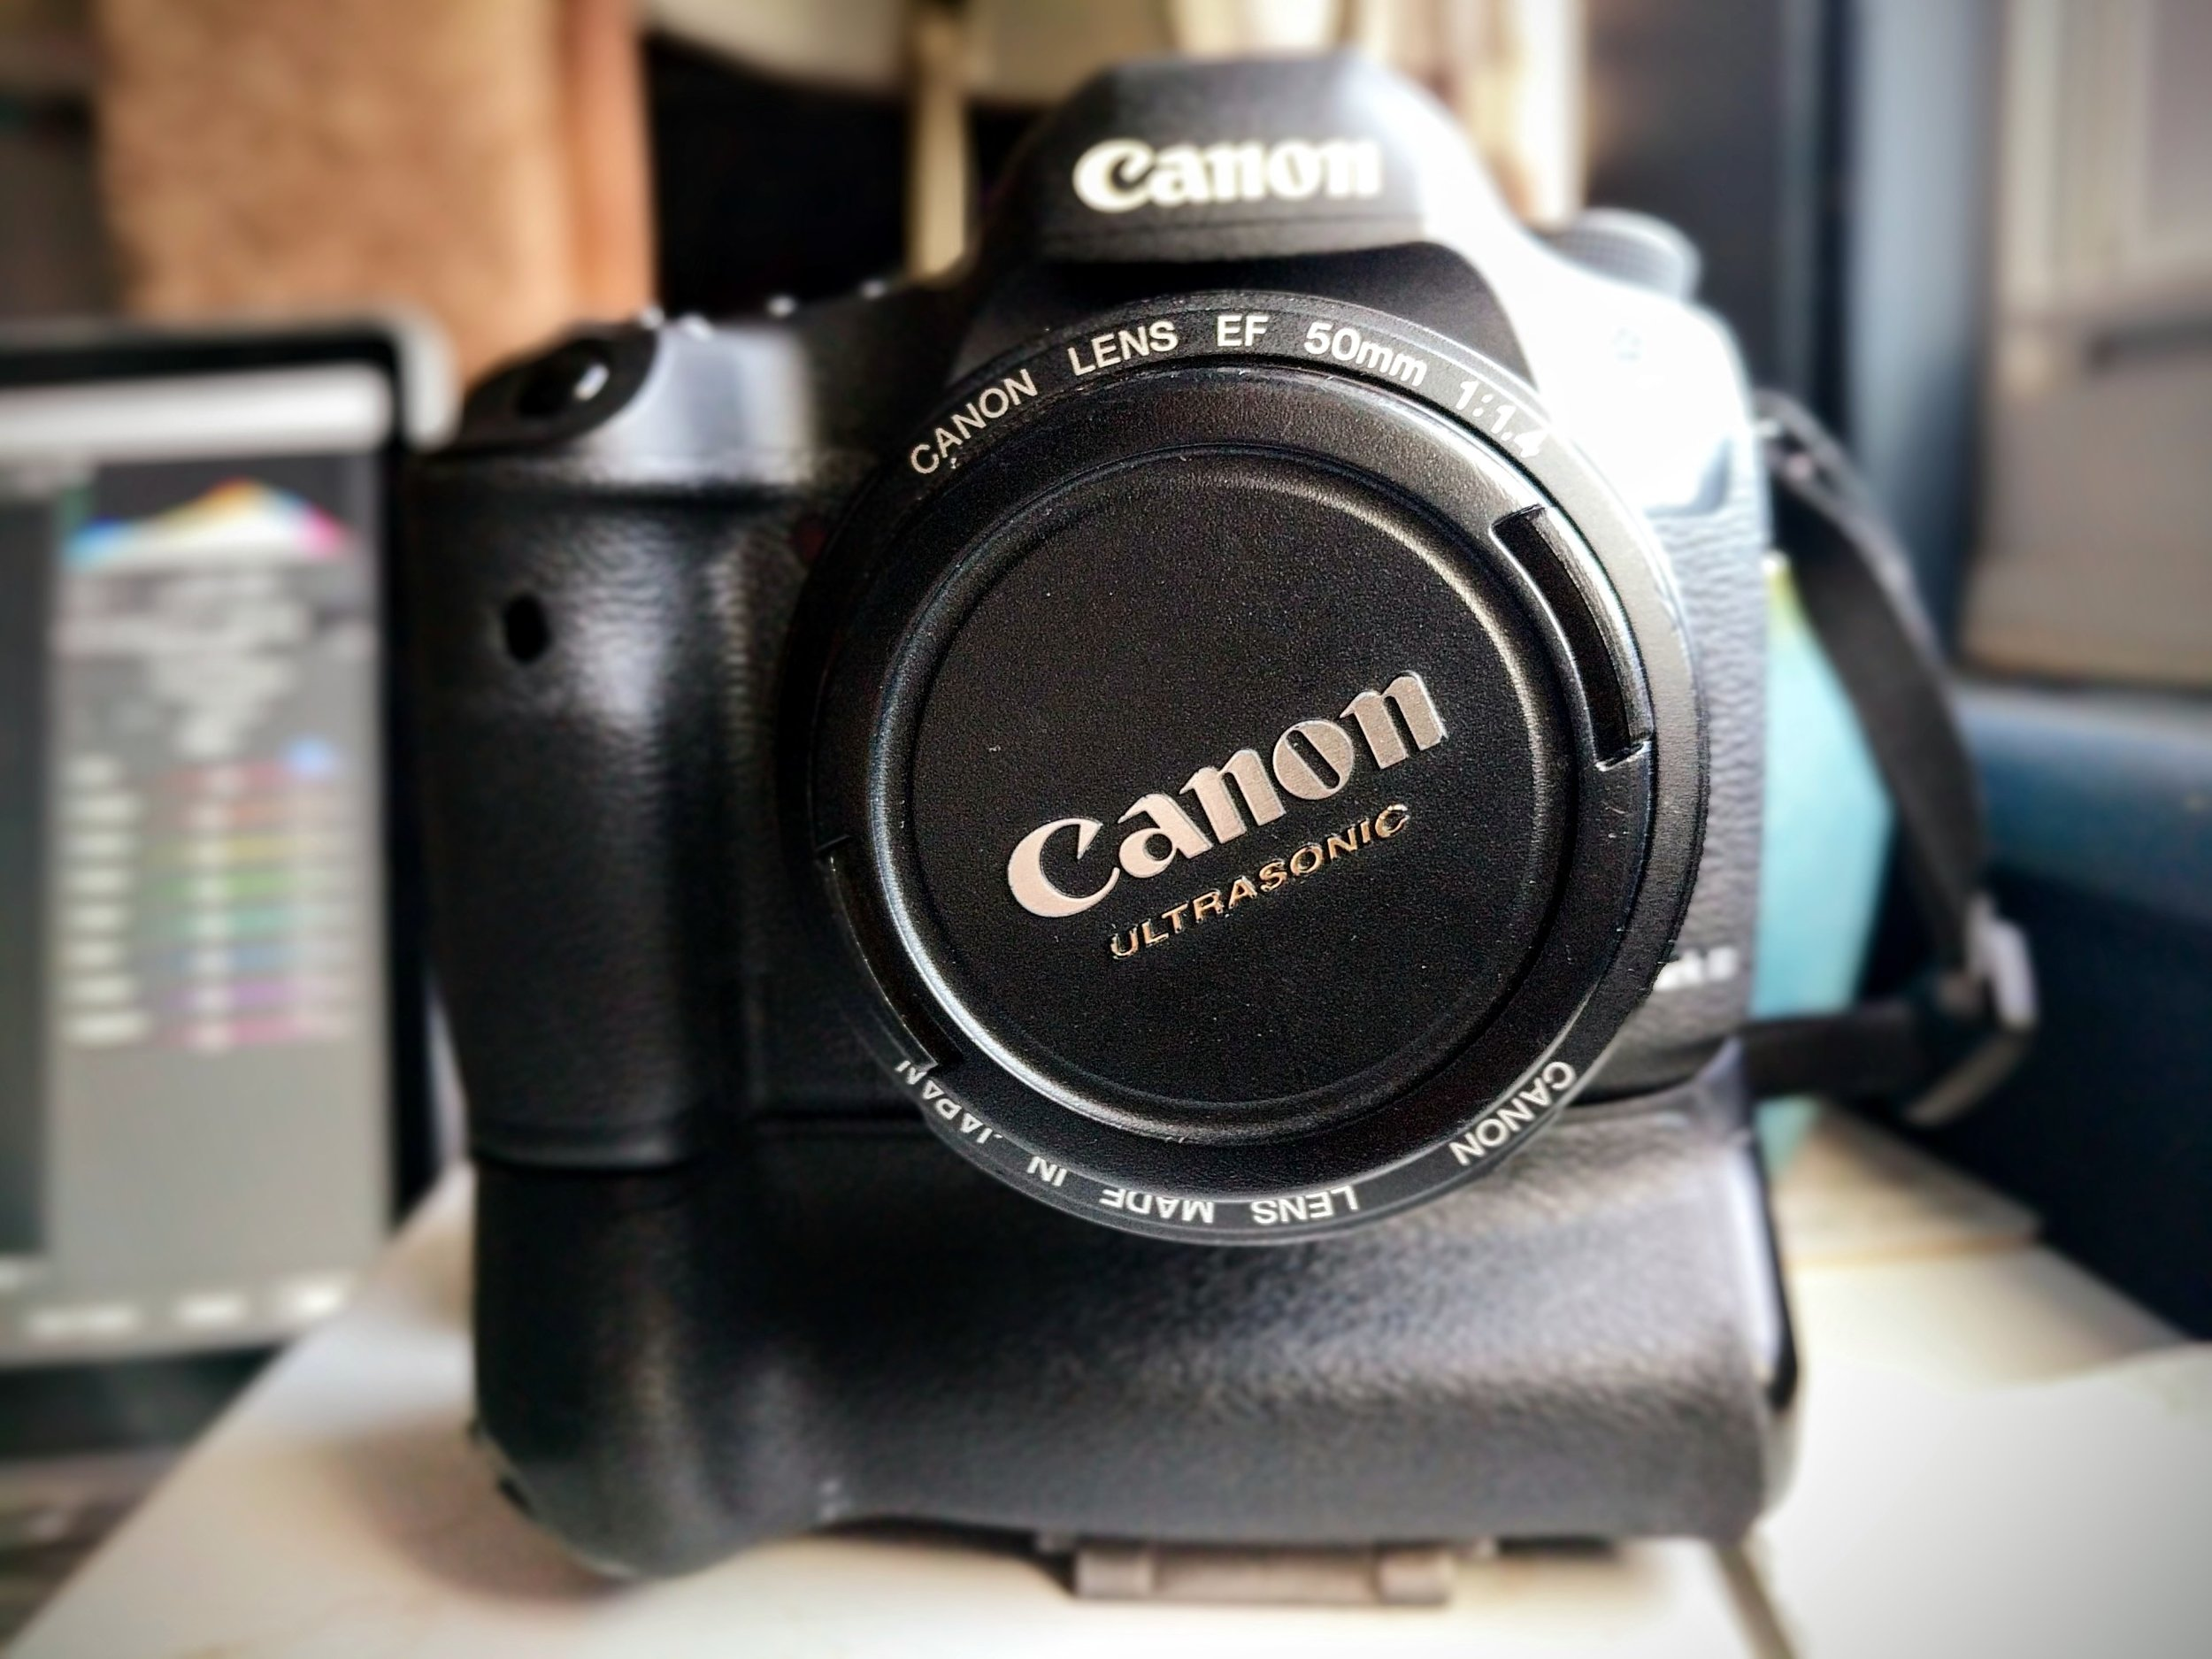 Canon 5D MkIII + 50mm f/1.4